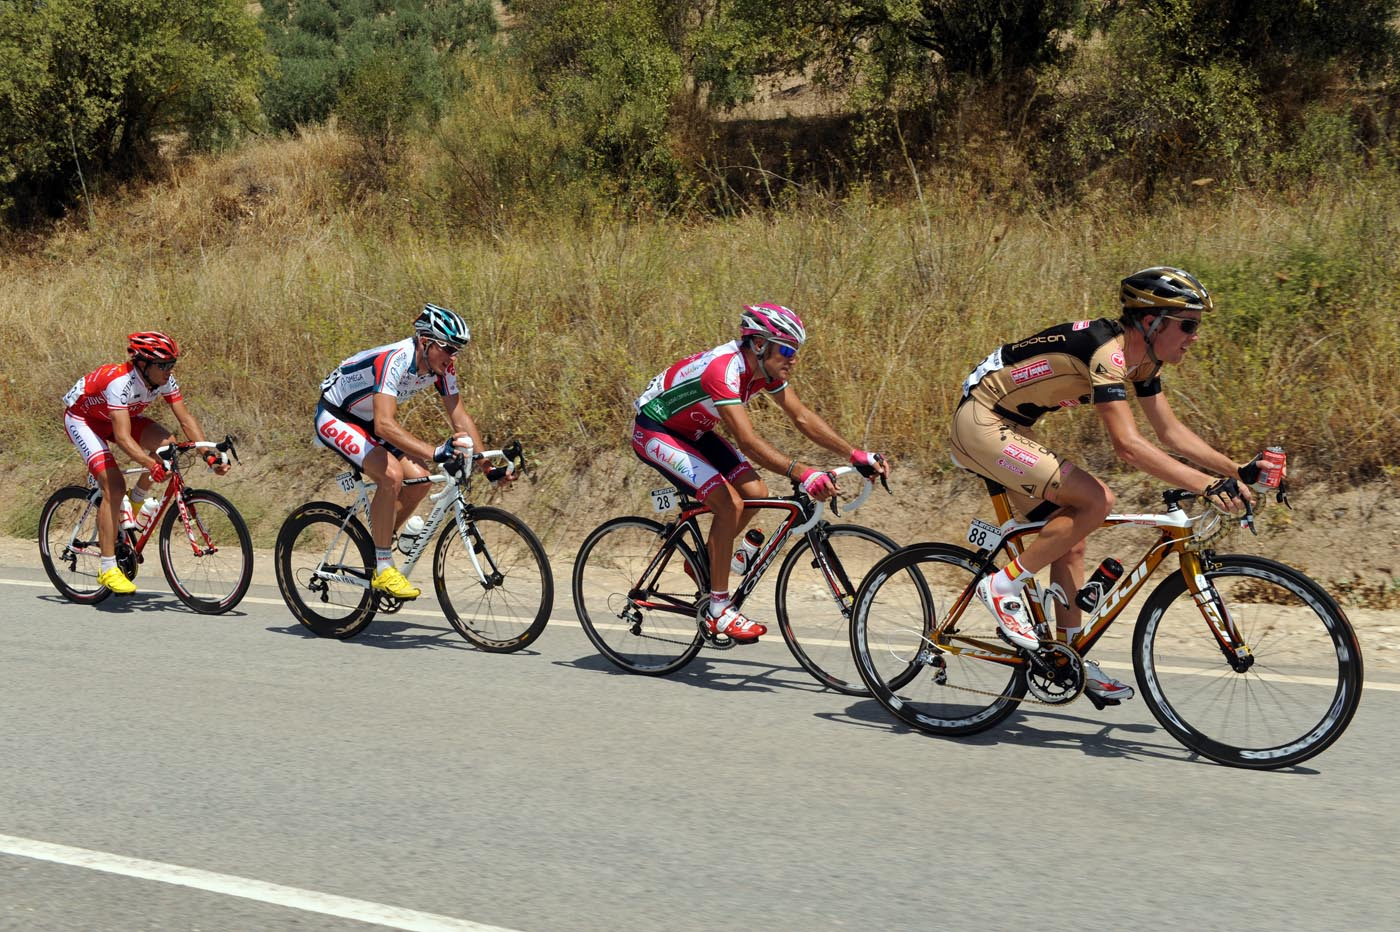 Johnnie Walker escape, Vuelta a Espana 2010, stage two